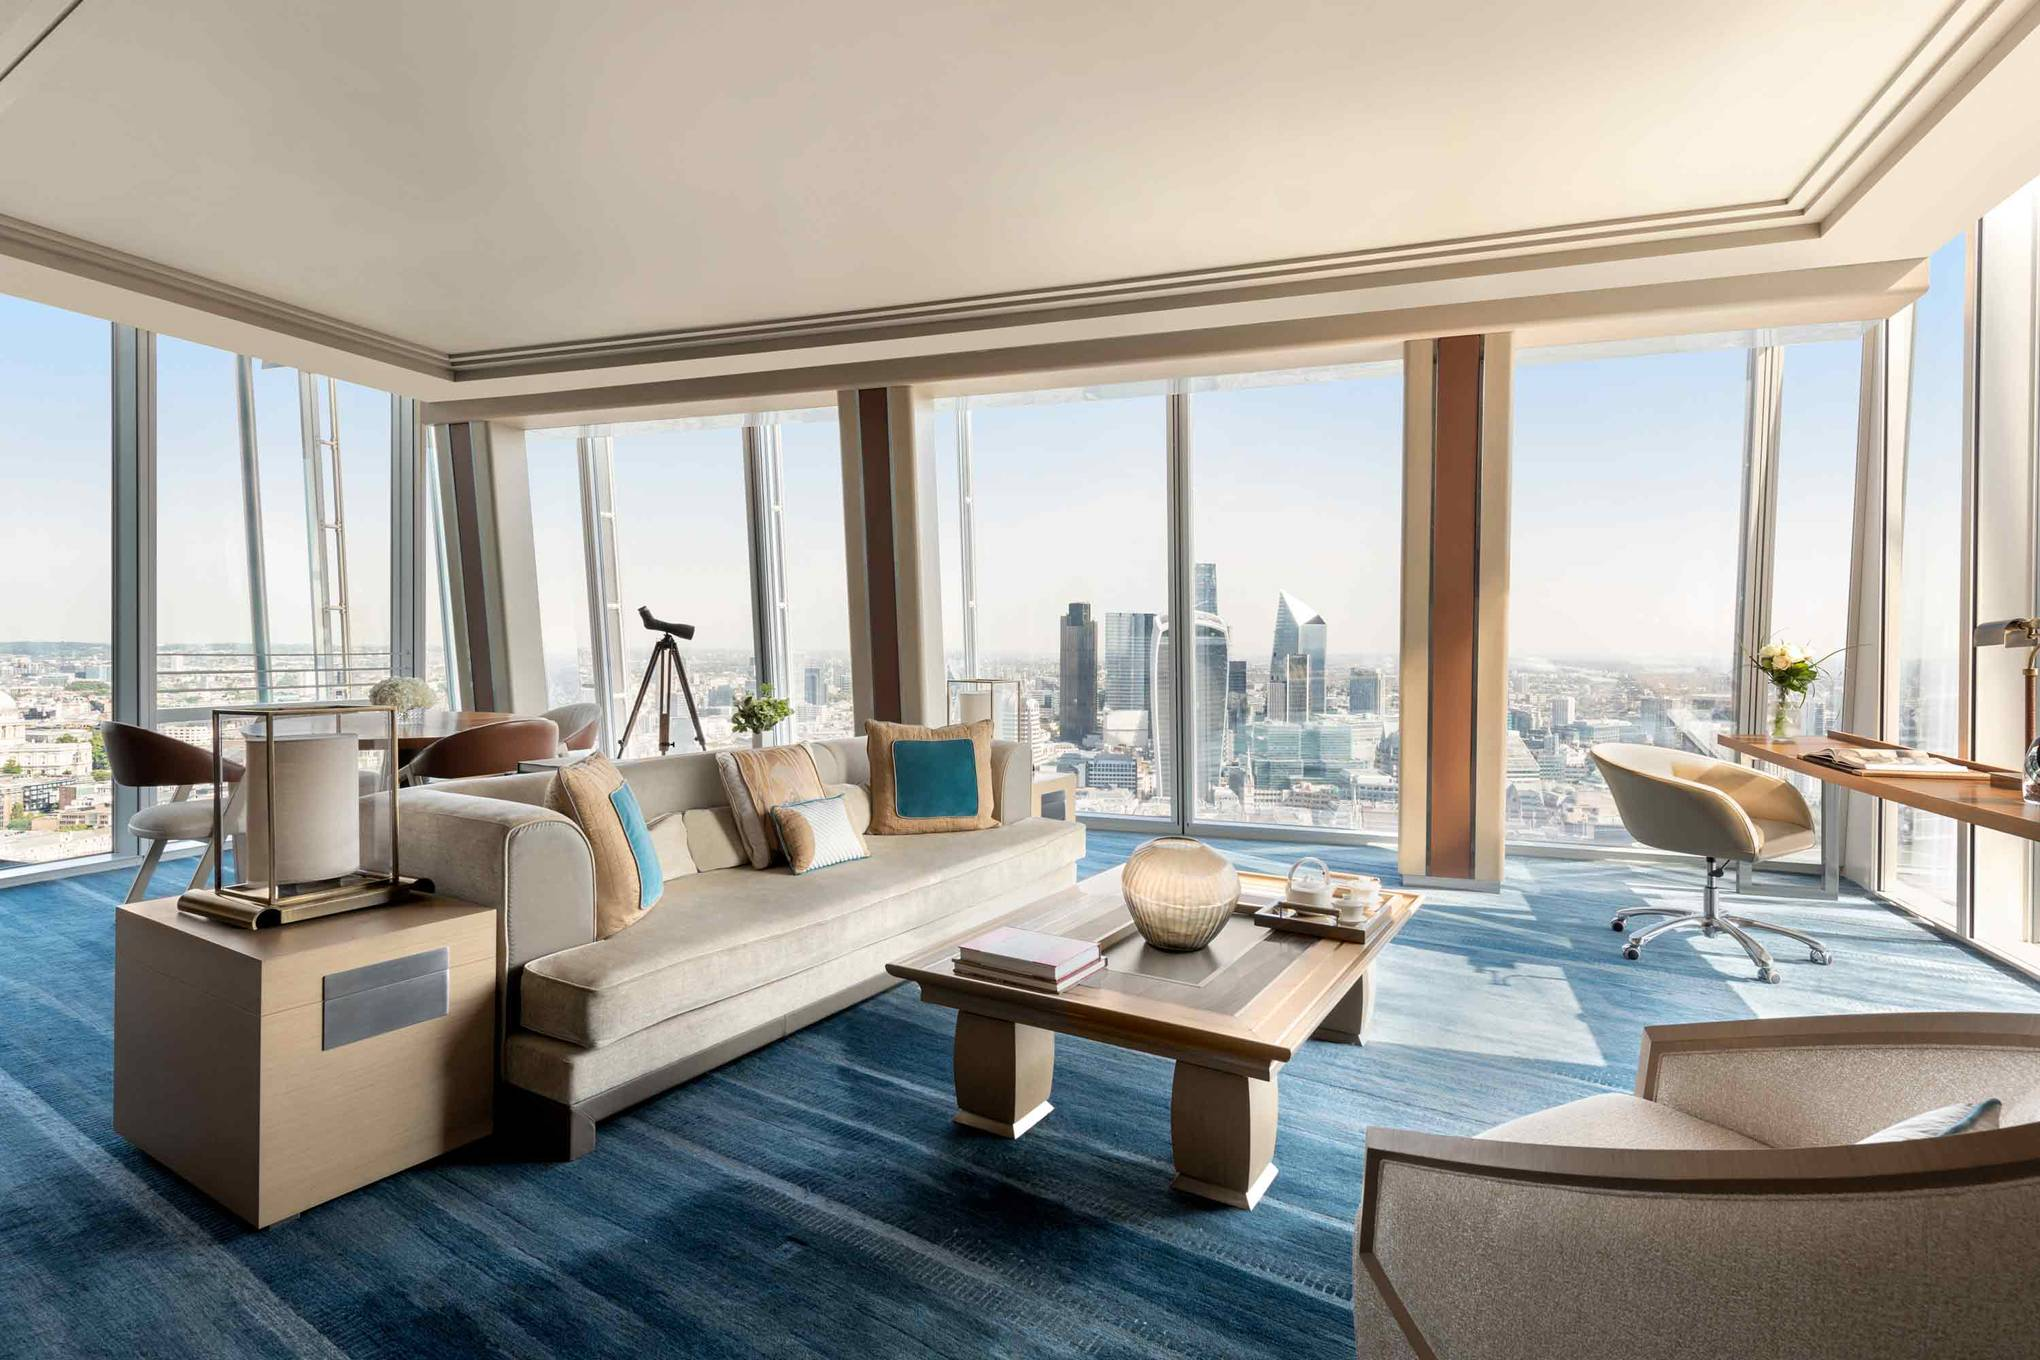 Shangri-La at the Shard: the hotel with the best views in London?